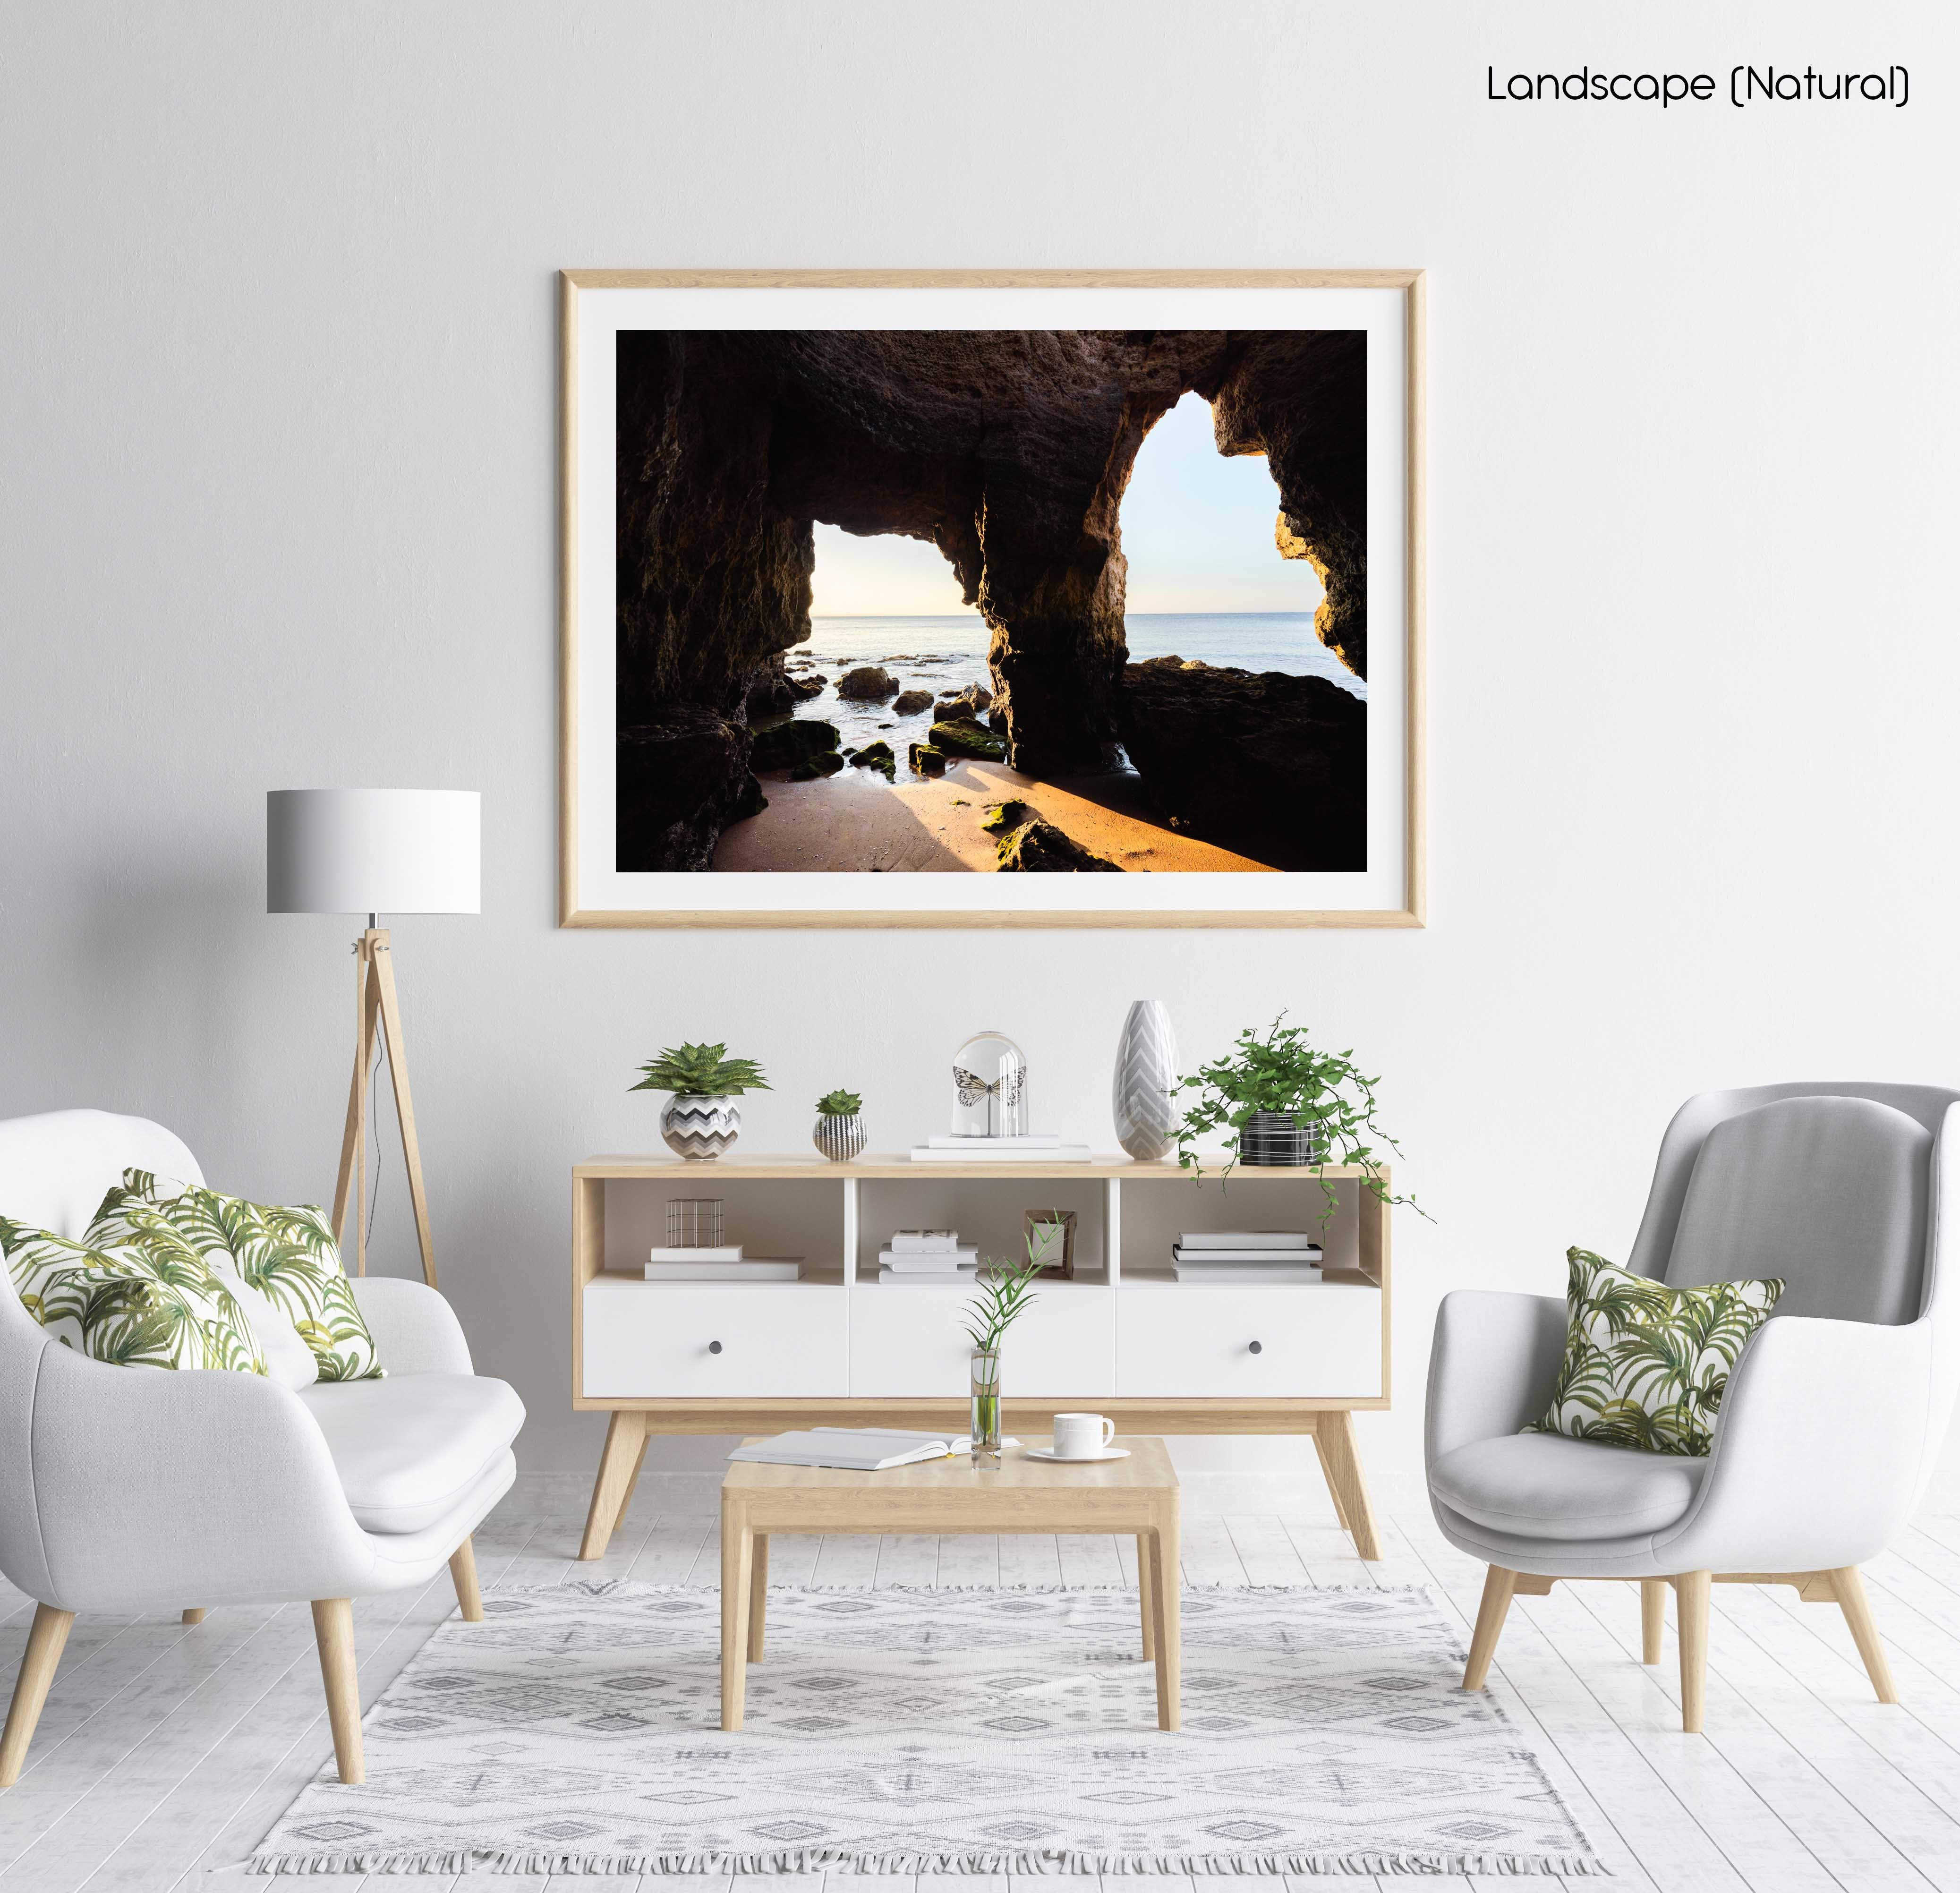 Sunrise light shining through caves in Lagos in a natural fine art frame